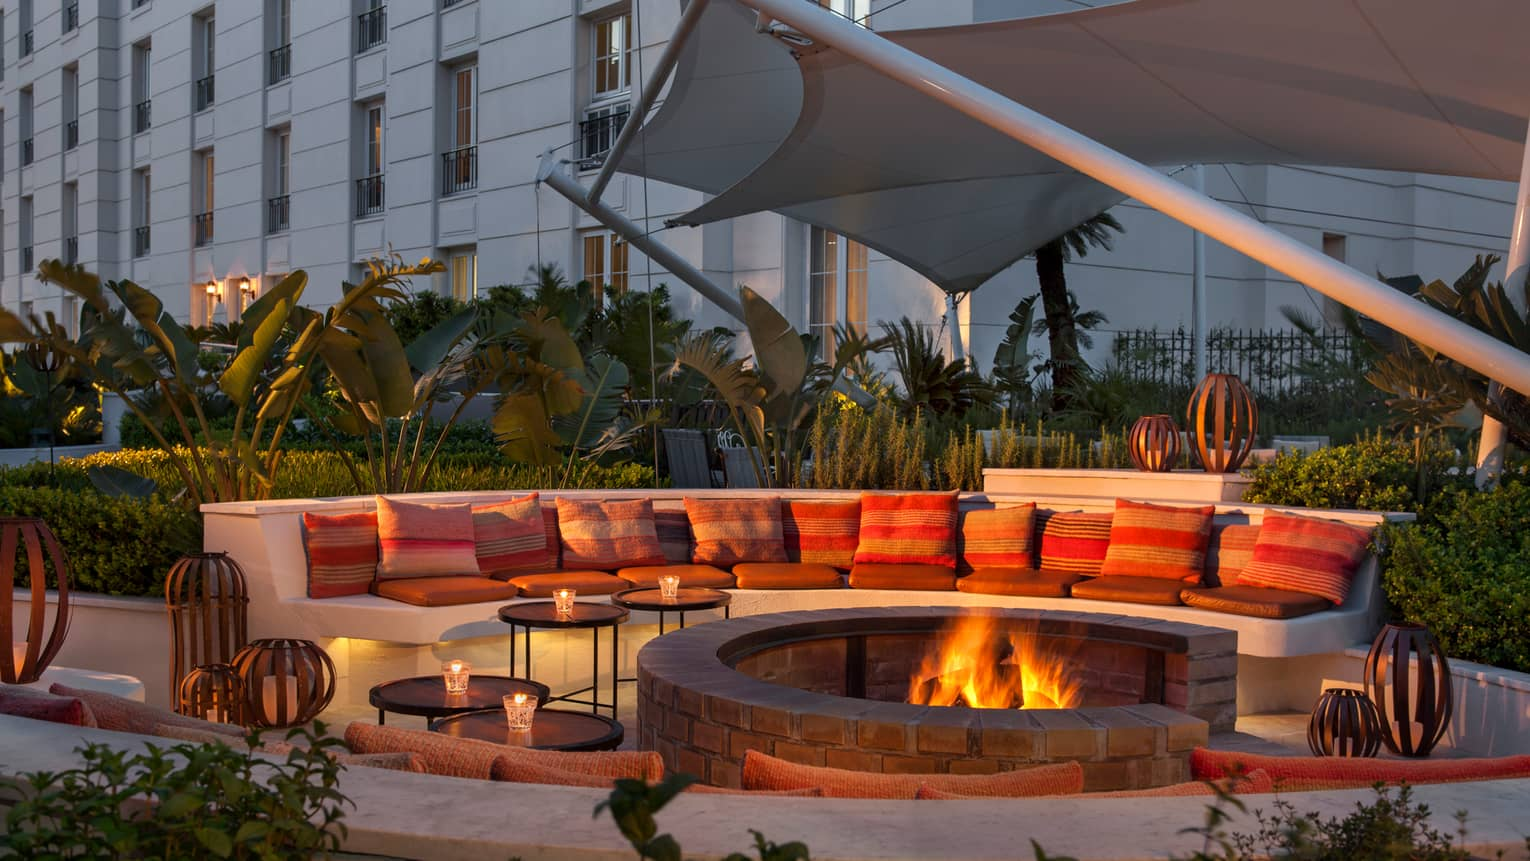 Large curved white bench with cushions around outdoor fire pit with flames at dusk